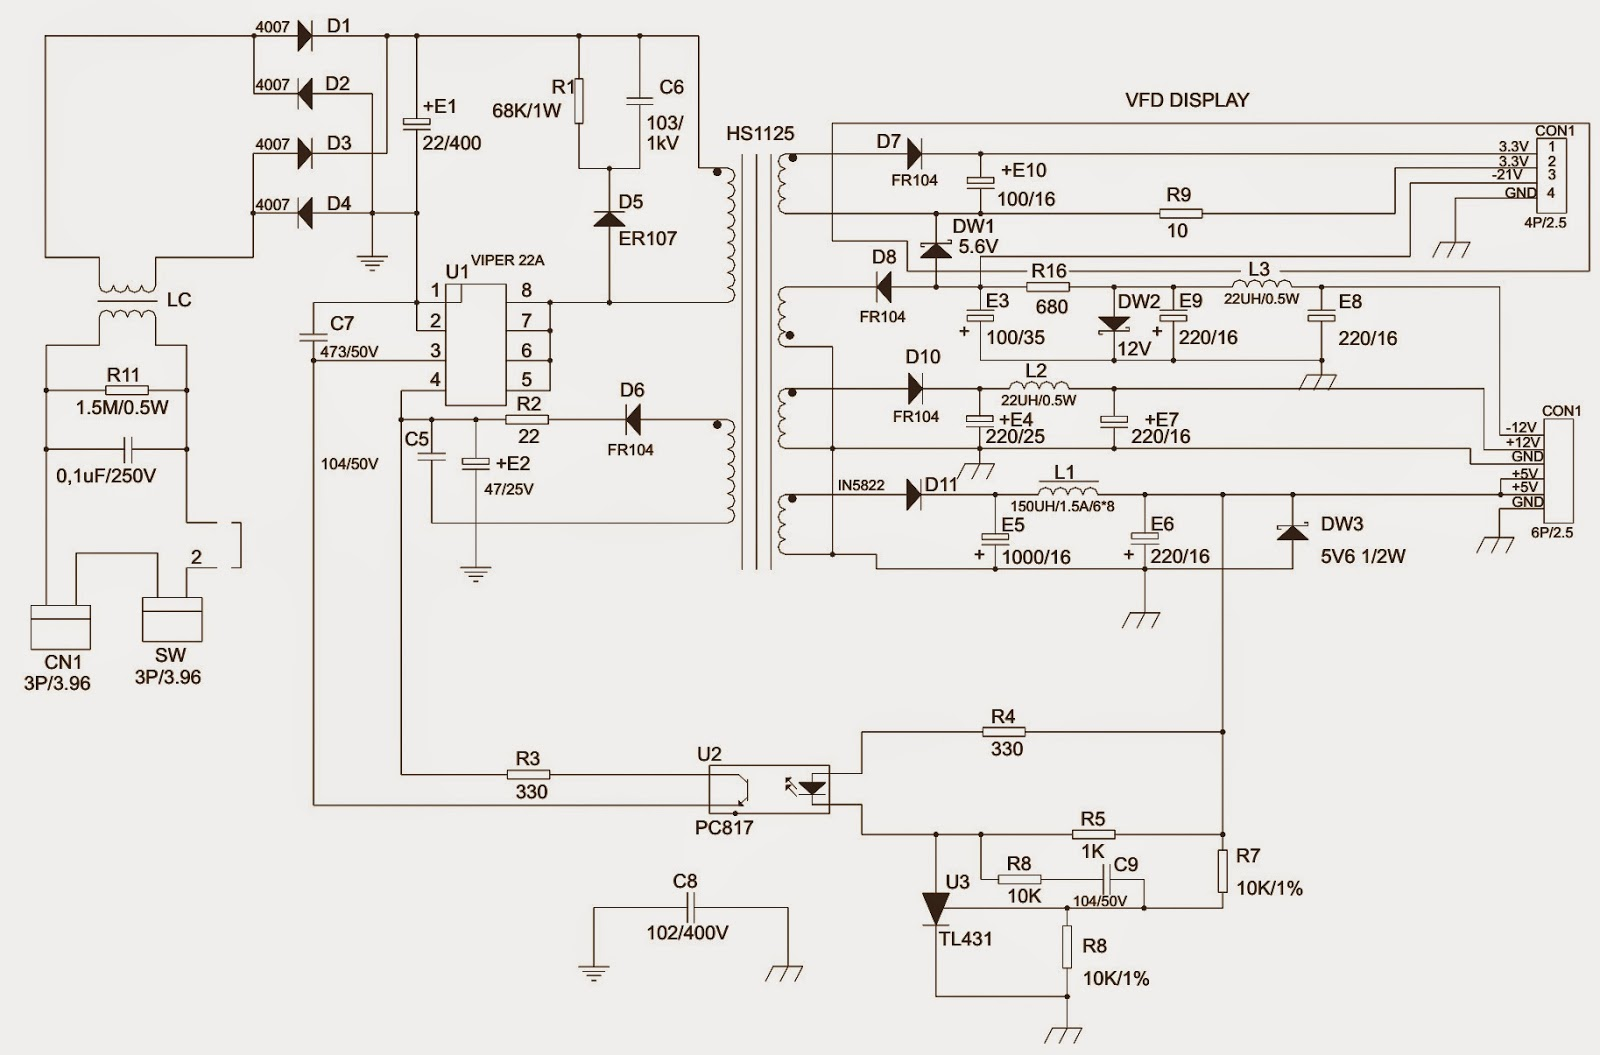 Schematic Diagrams Britania Dvd Game Game Usb Smps